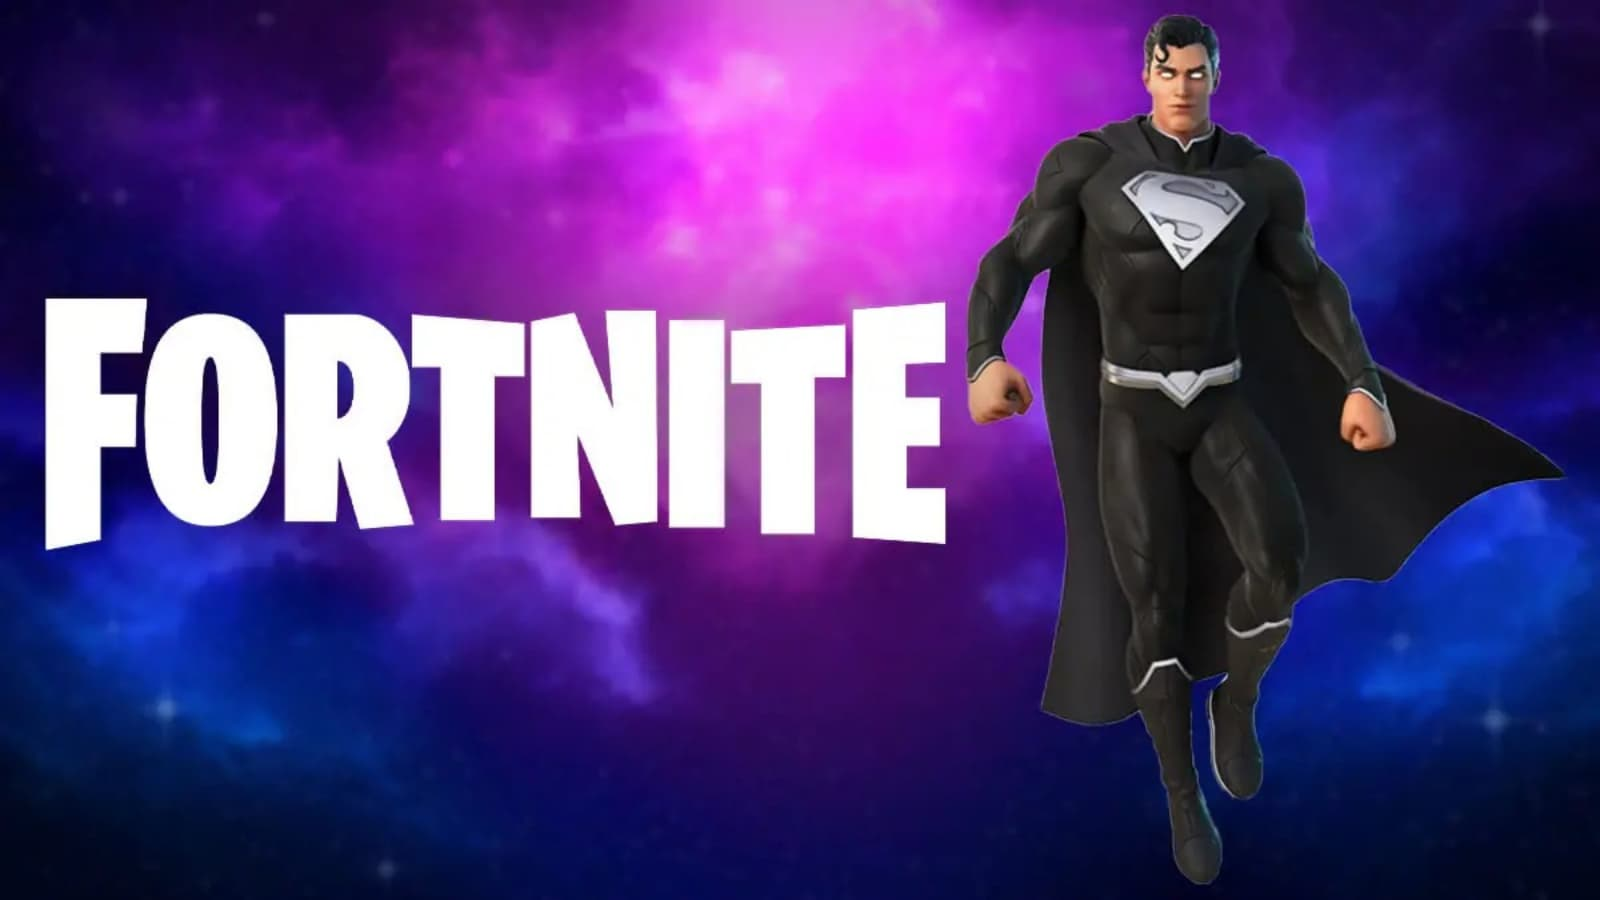 Fortnite Superman Skin in Season 7: Release date, Prices, and More